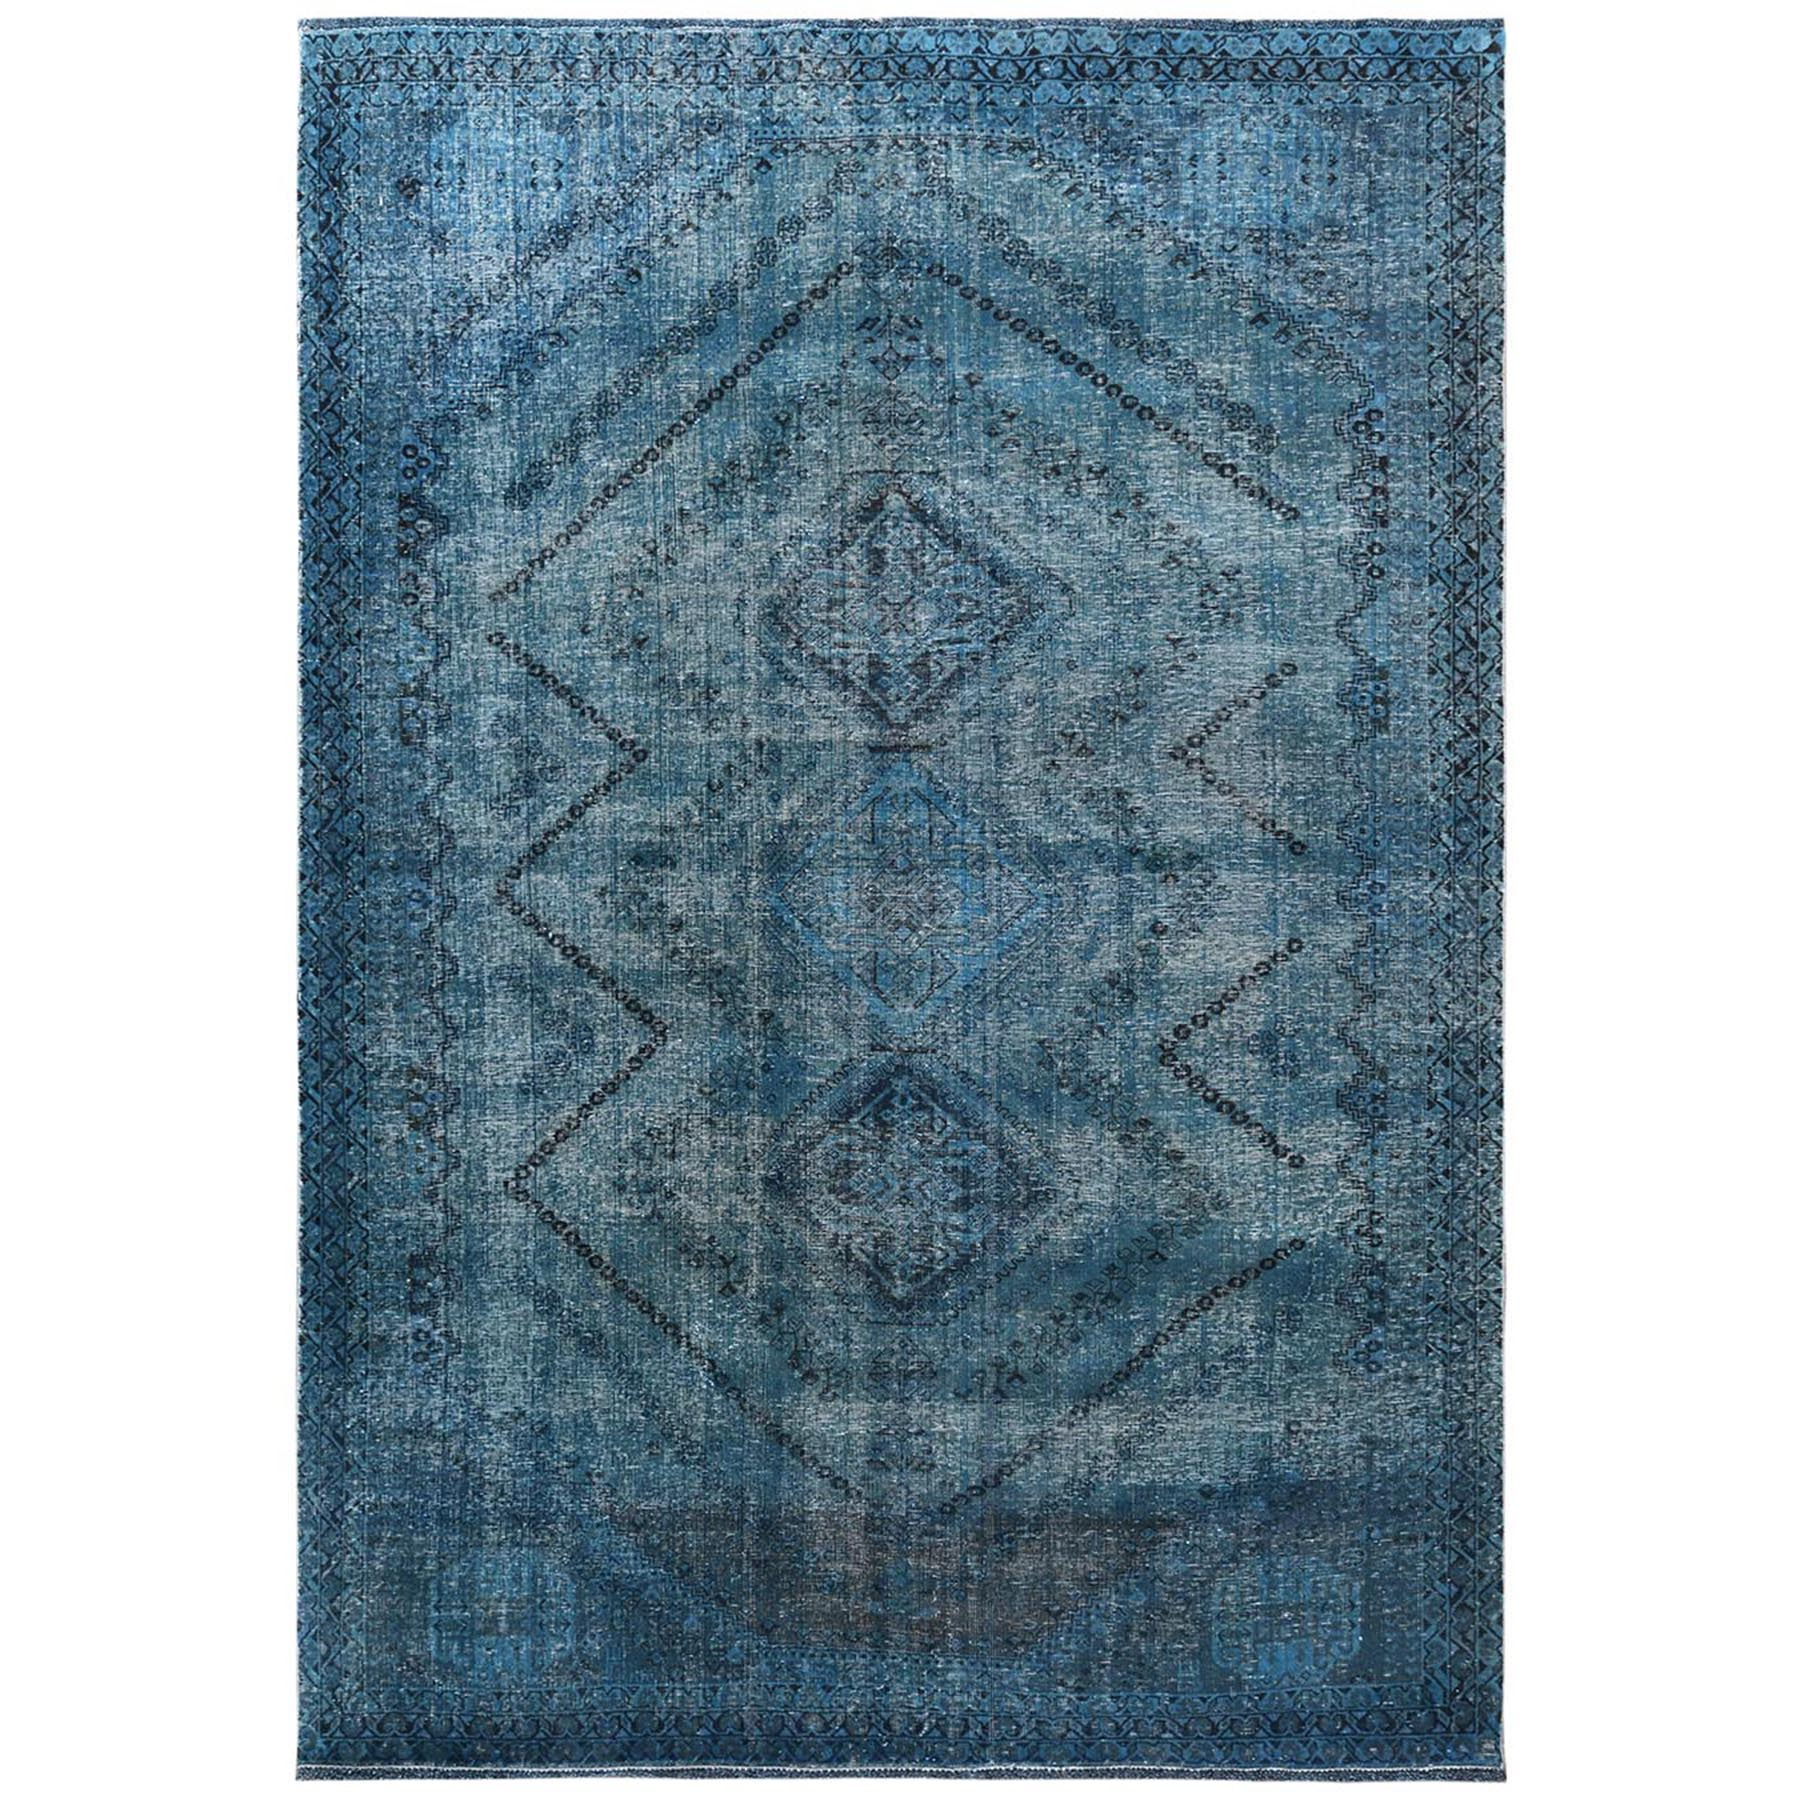 Fetneh Collection And Vintage Overdyed Collection Hand Knotted Teal Rug No: 1122122